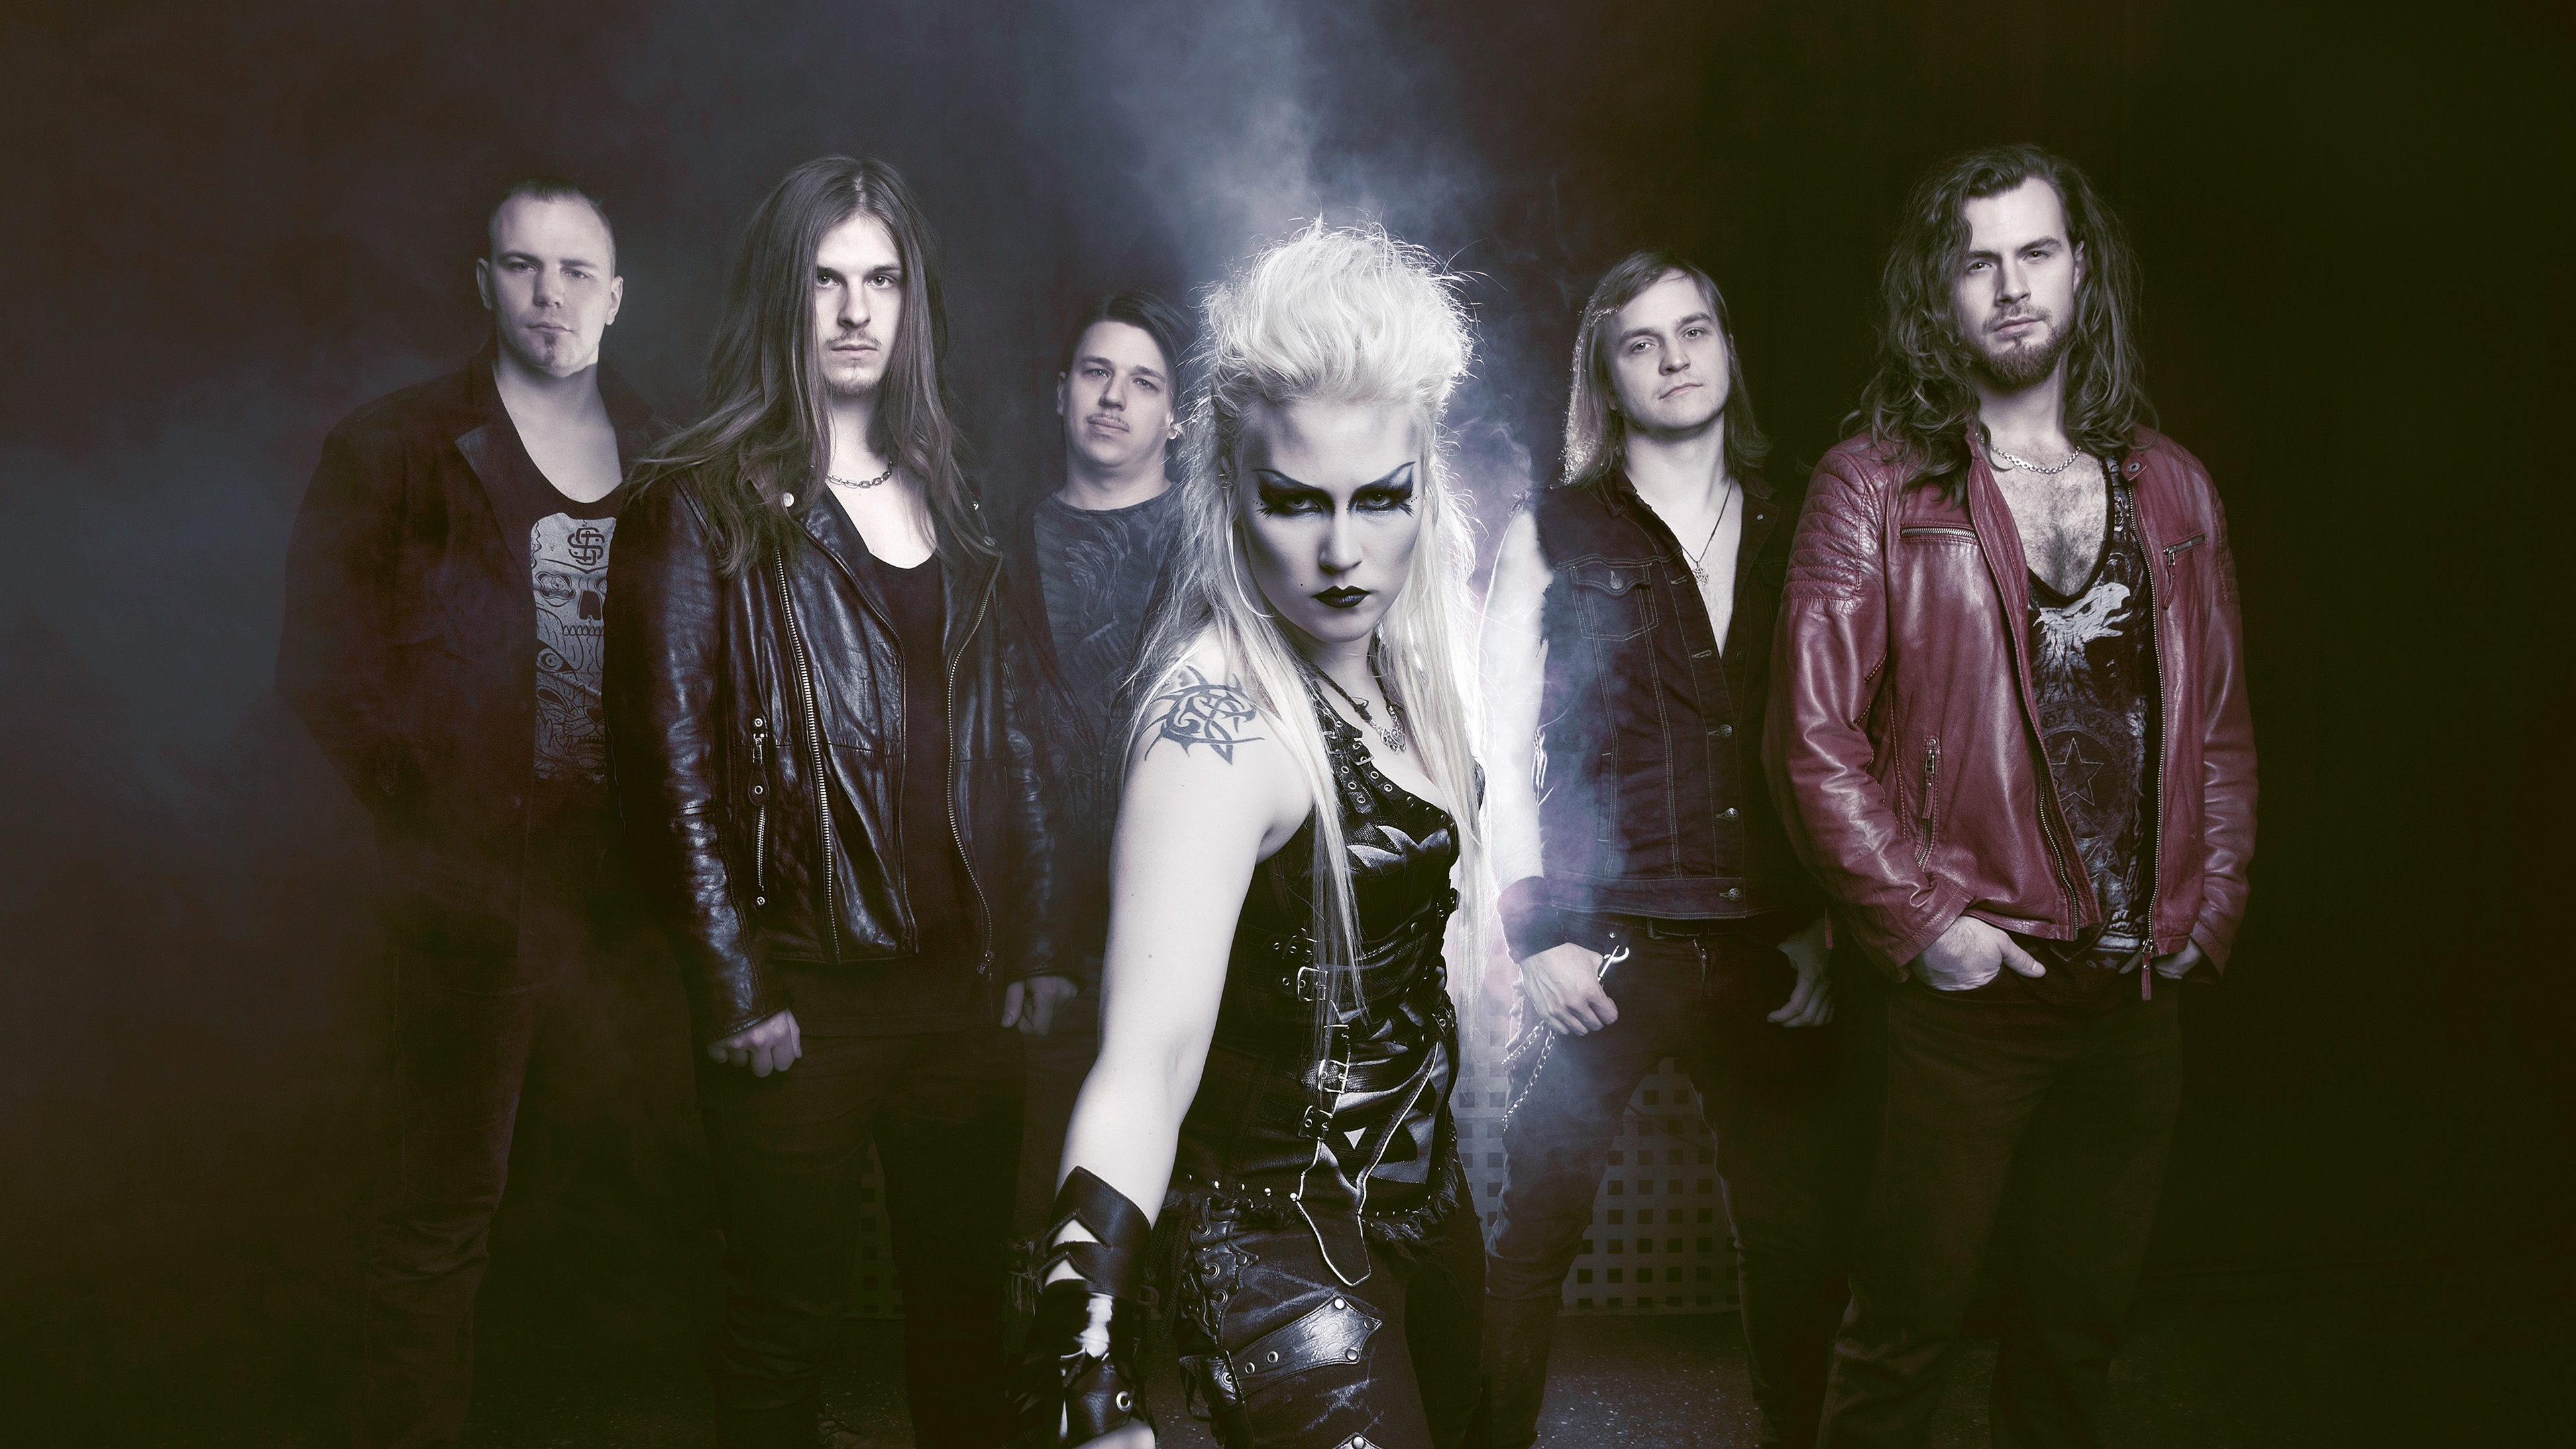 Wallpaper Battle Beast Finland Heavy Metal Band 3840x2160 Uhd 4k Picture Image